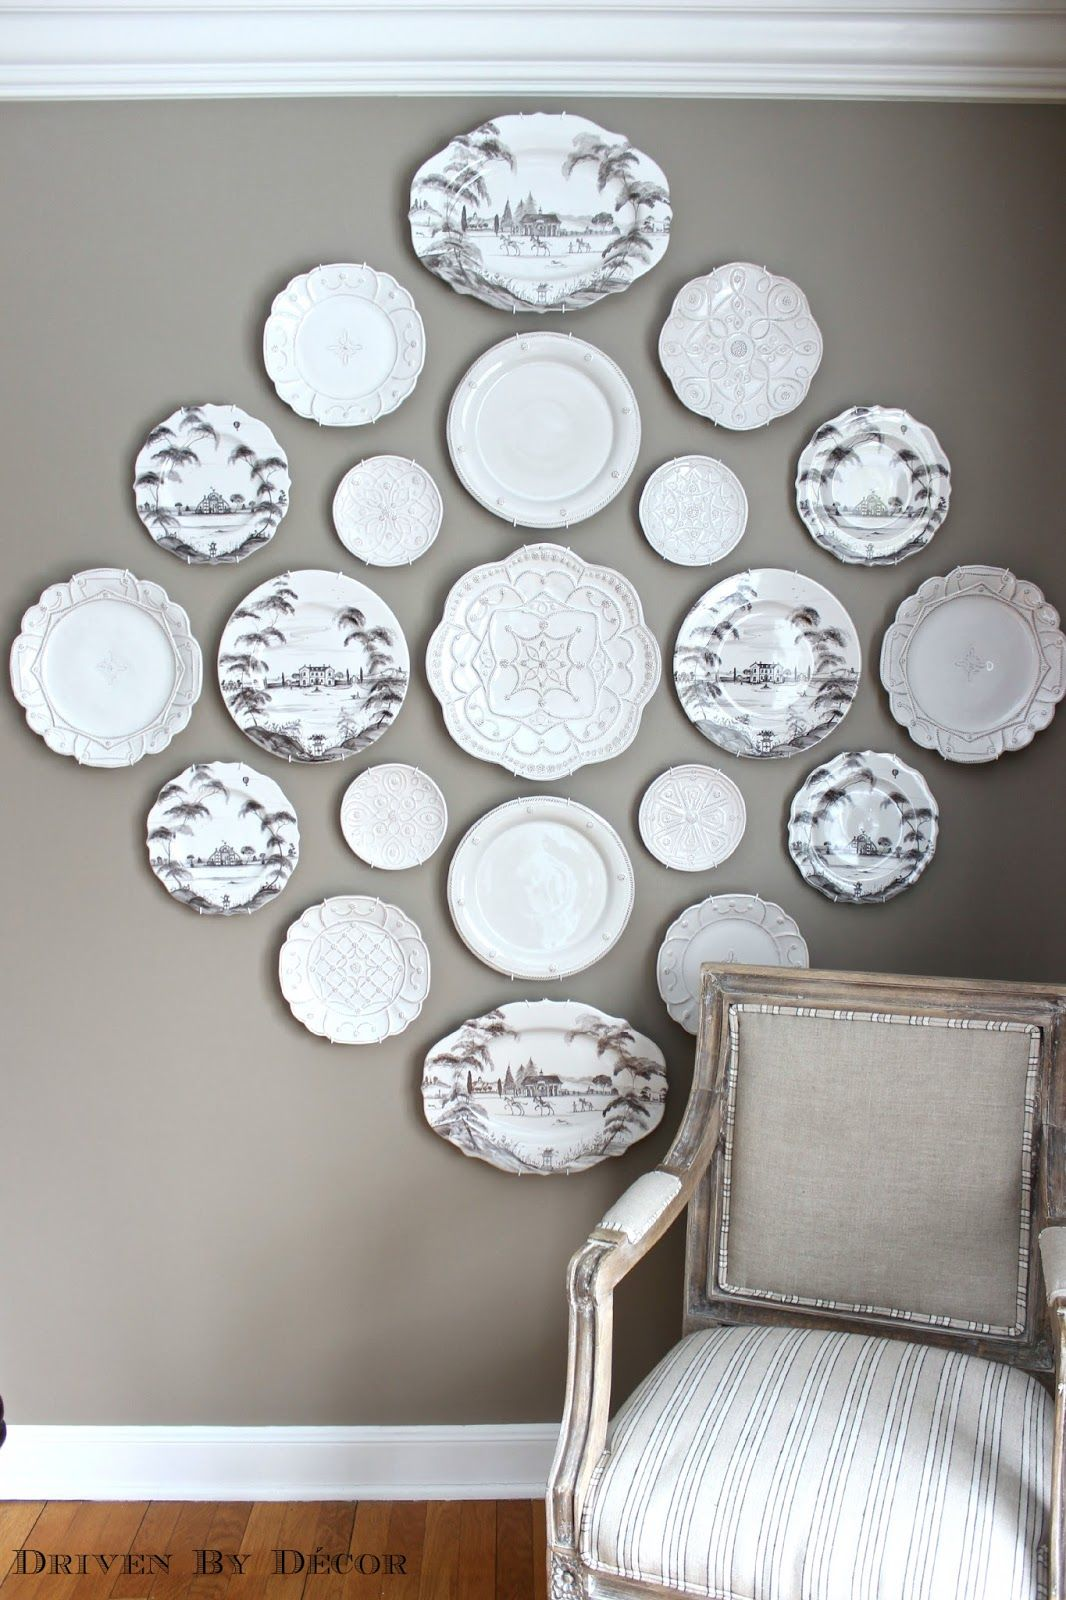 Decorative Plates To Hang On Wall.Hanging Plates To Create A Decorative Plate Wall Do You Like